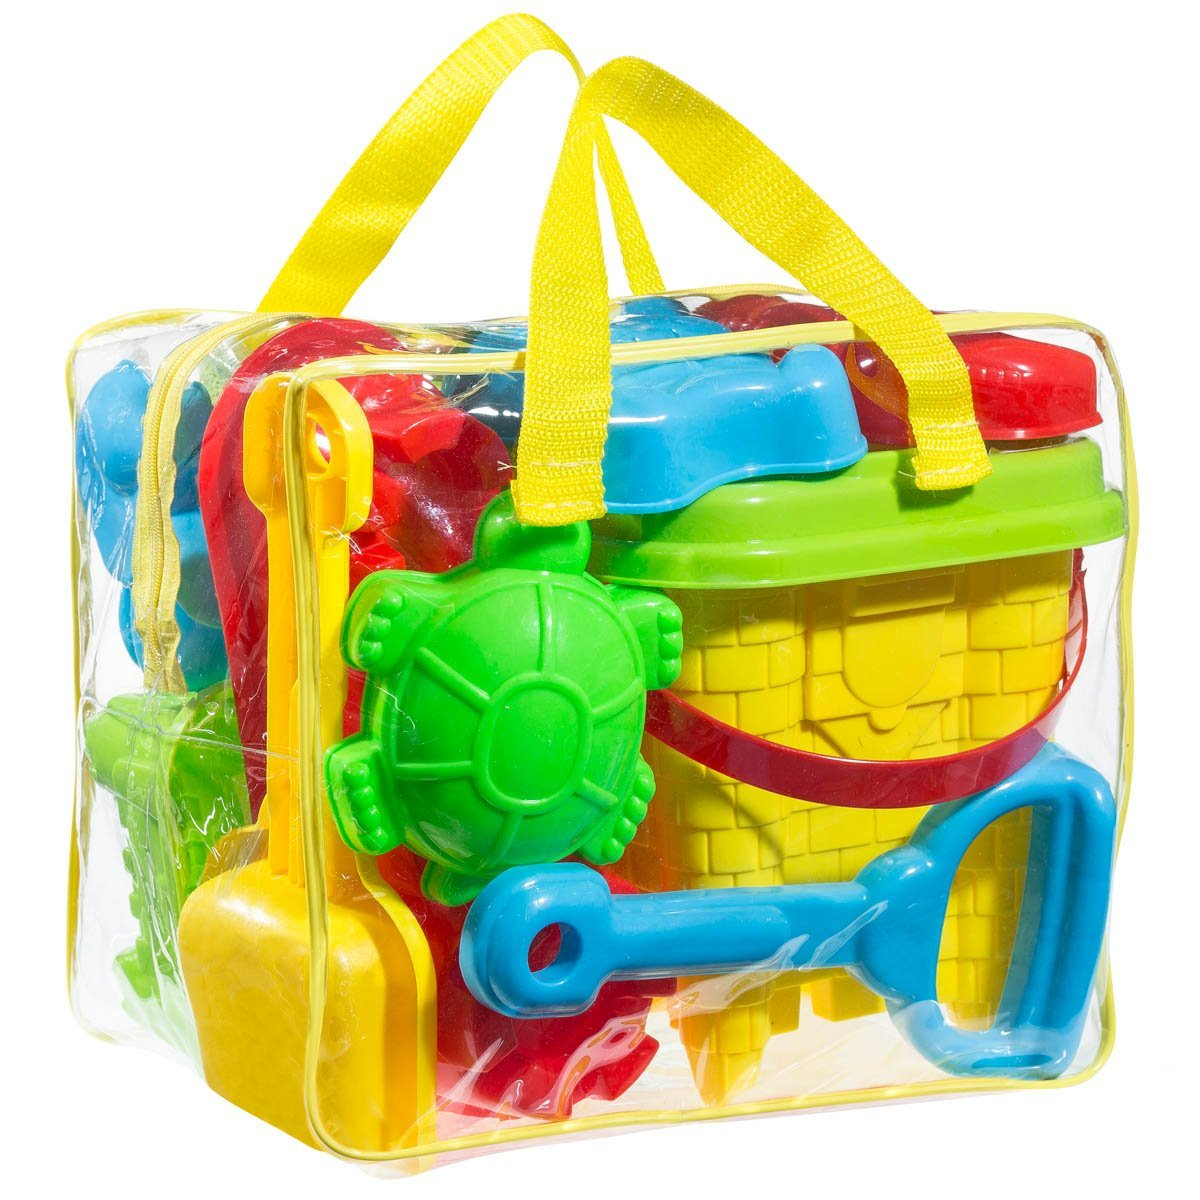 Click here to buy GoToys Beach sand Bathtub toy set, Models and Molds, Bucket, Shovels, Rakes, Etc. + Reusable Zippered Bag,it will keep....